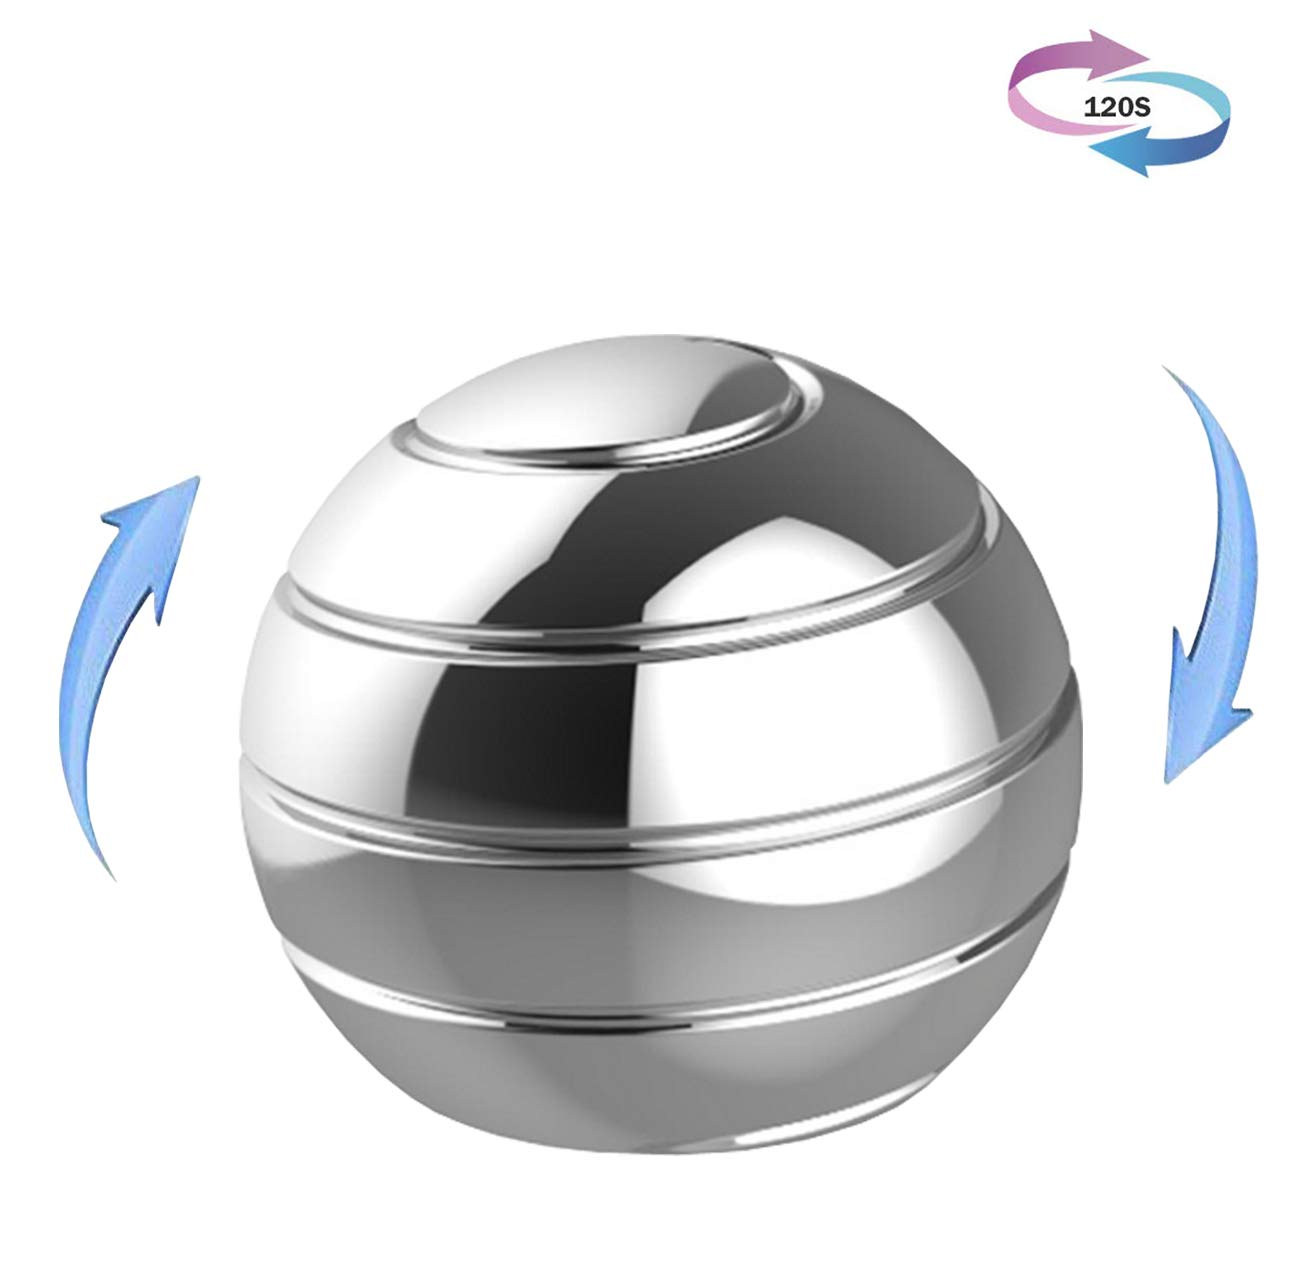 ilmobile Kinetic Desk Fidget Toy, Optical Illusion Metal Spinning Fidget Ball for Adults & Kids, Stress Relief Toys for ADHD & Eliminate Anxiety & Keep Focus & Relaxing (Silver)